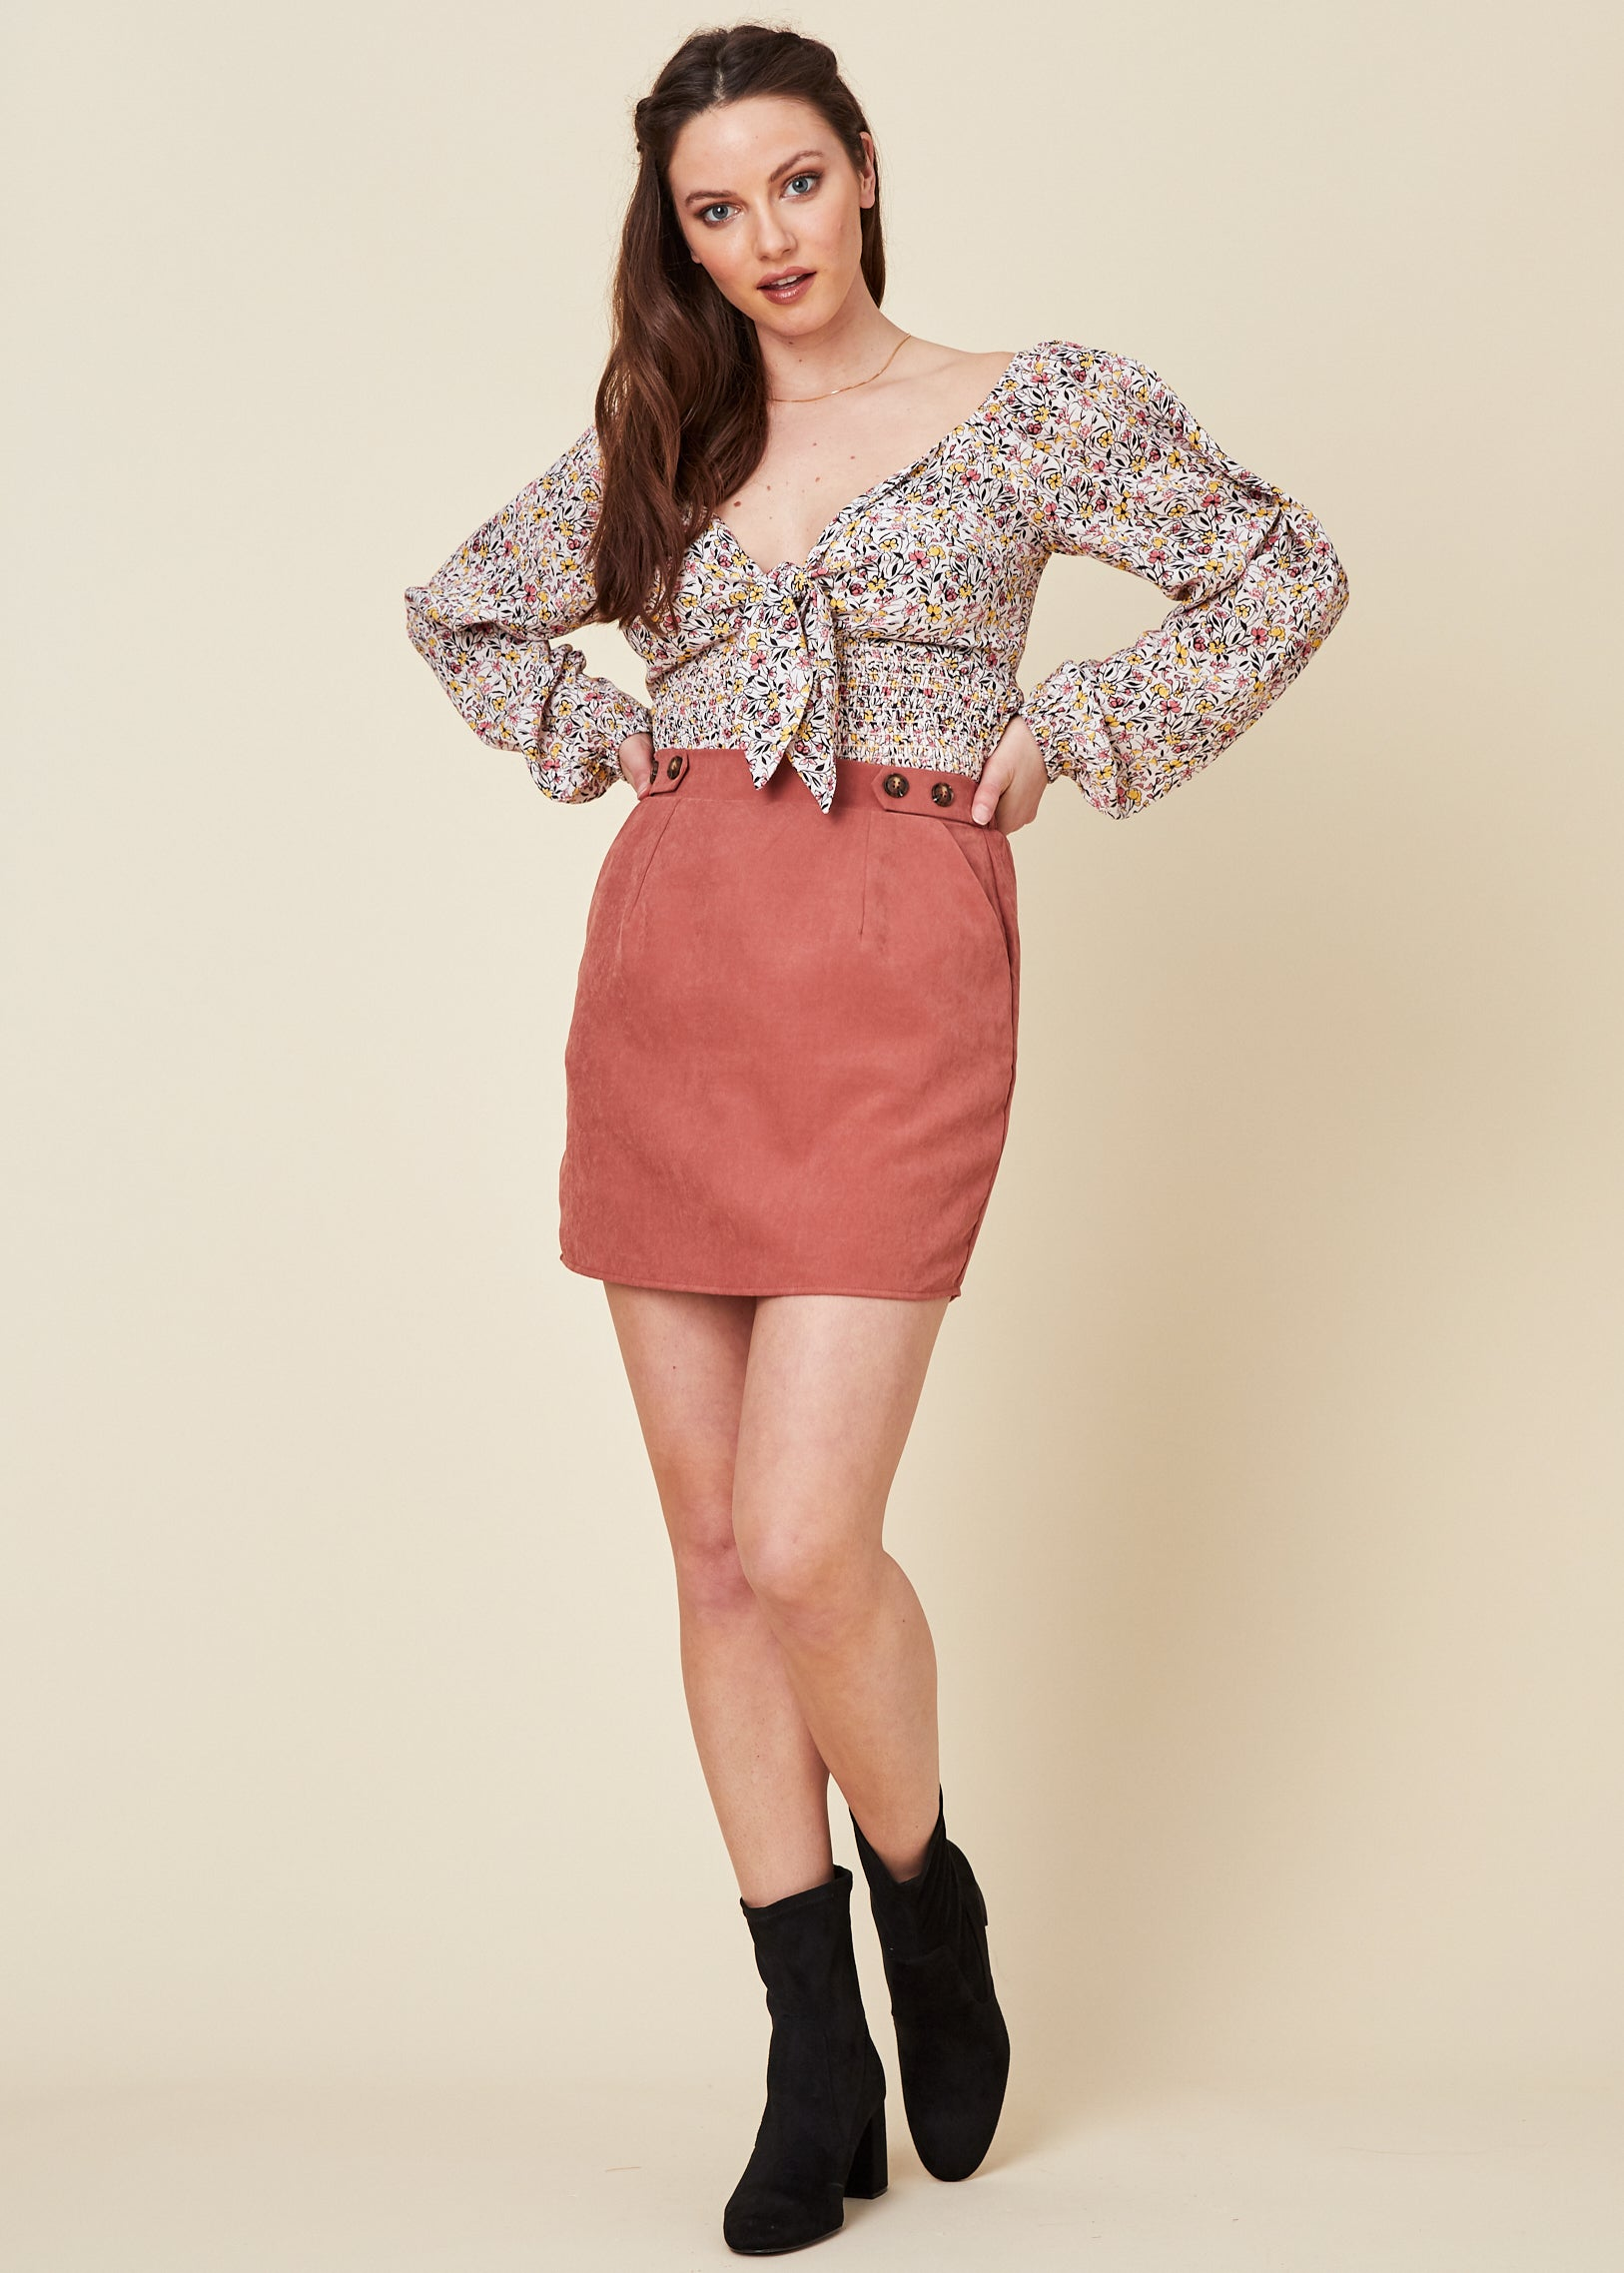 Orchard Skirt